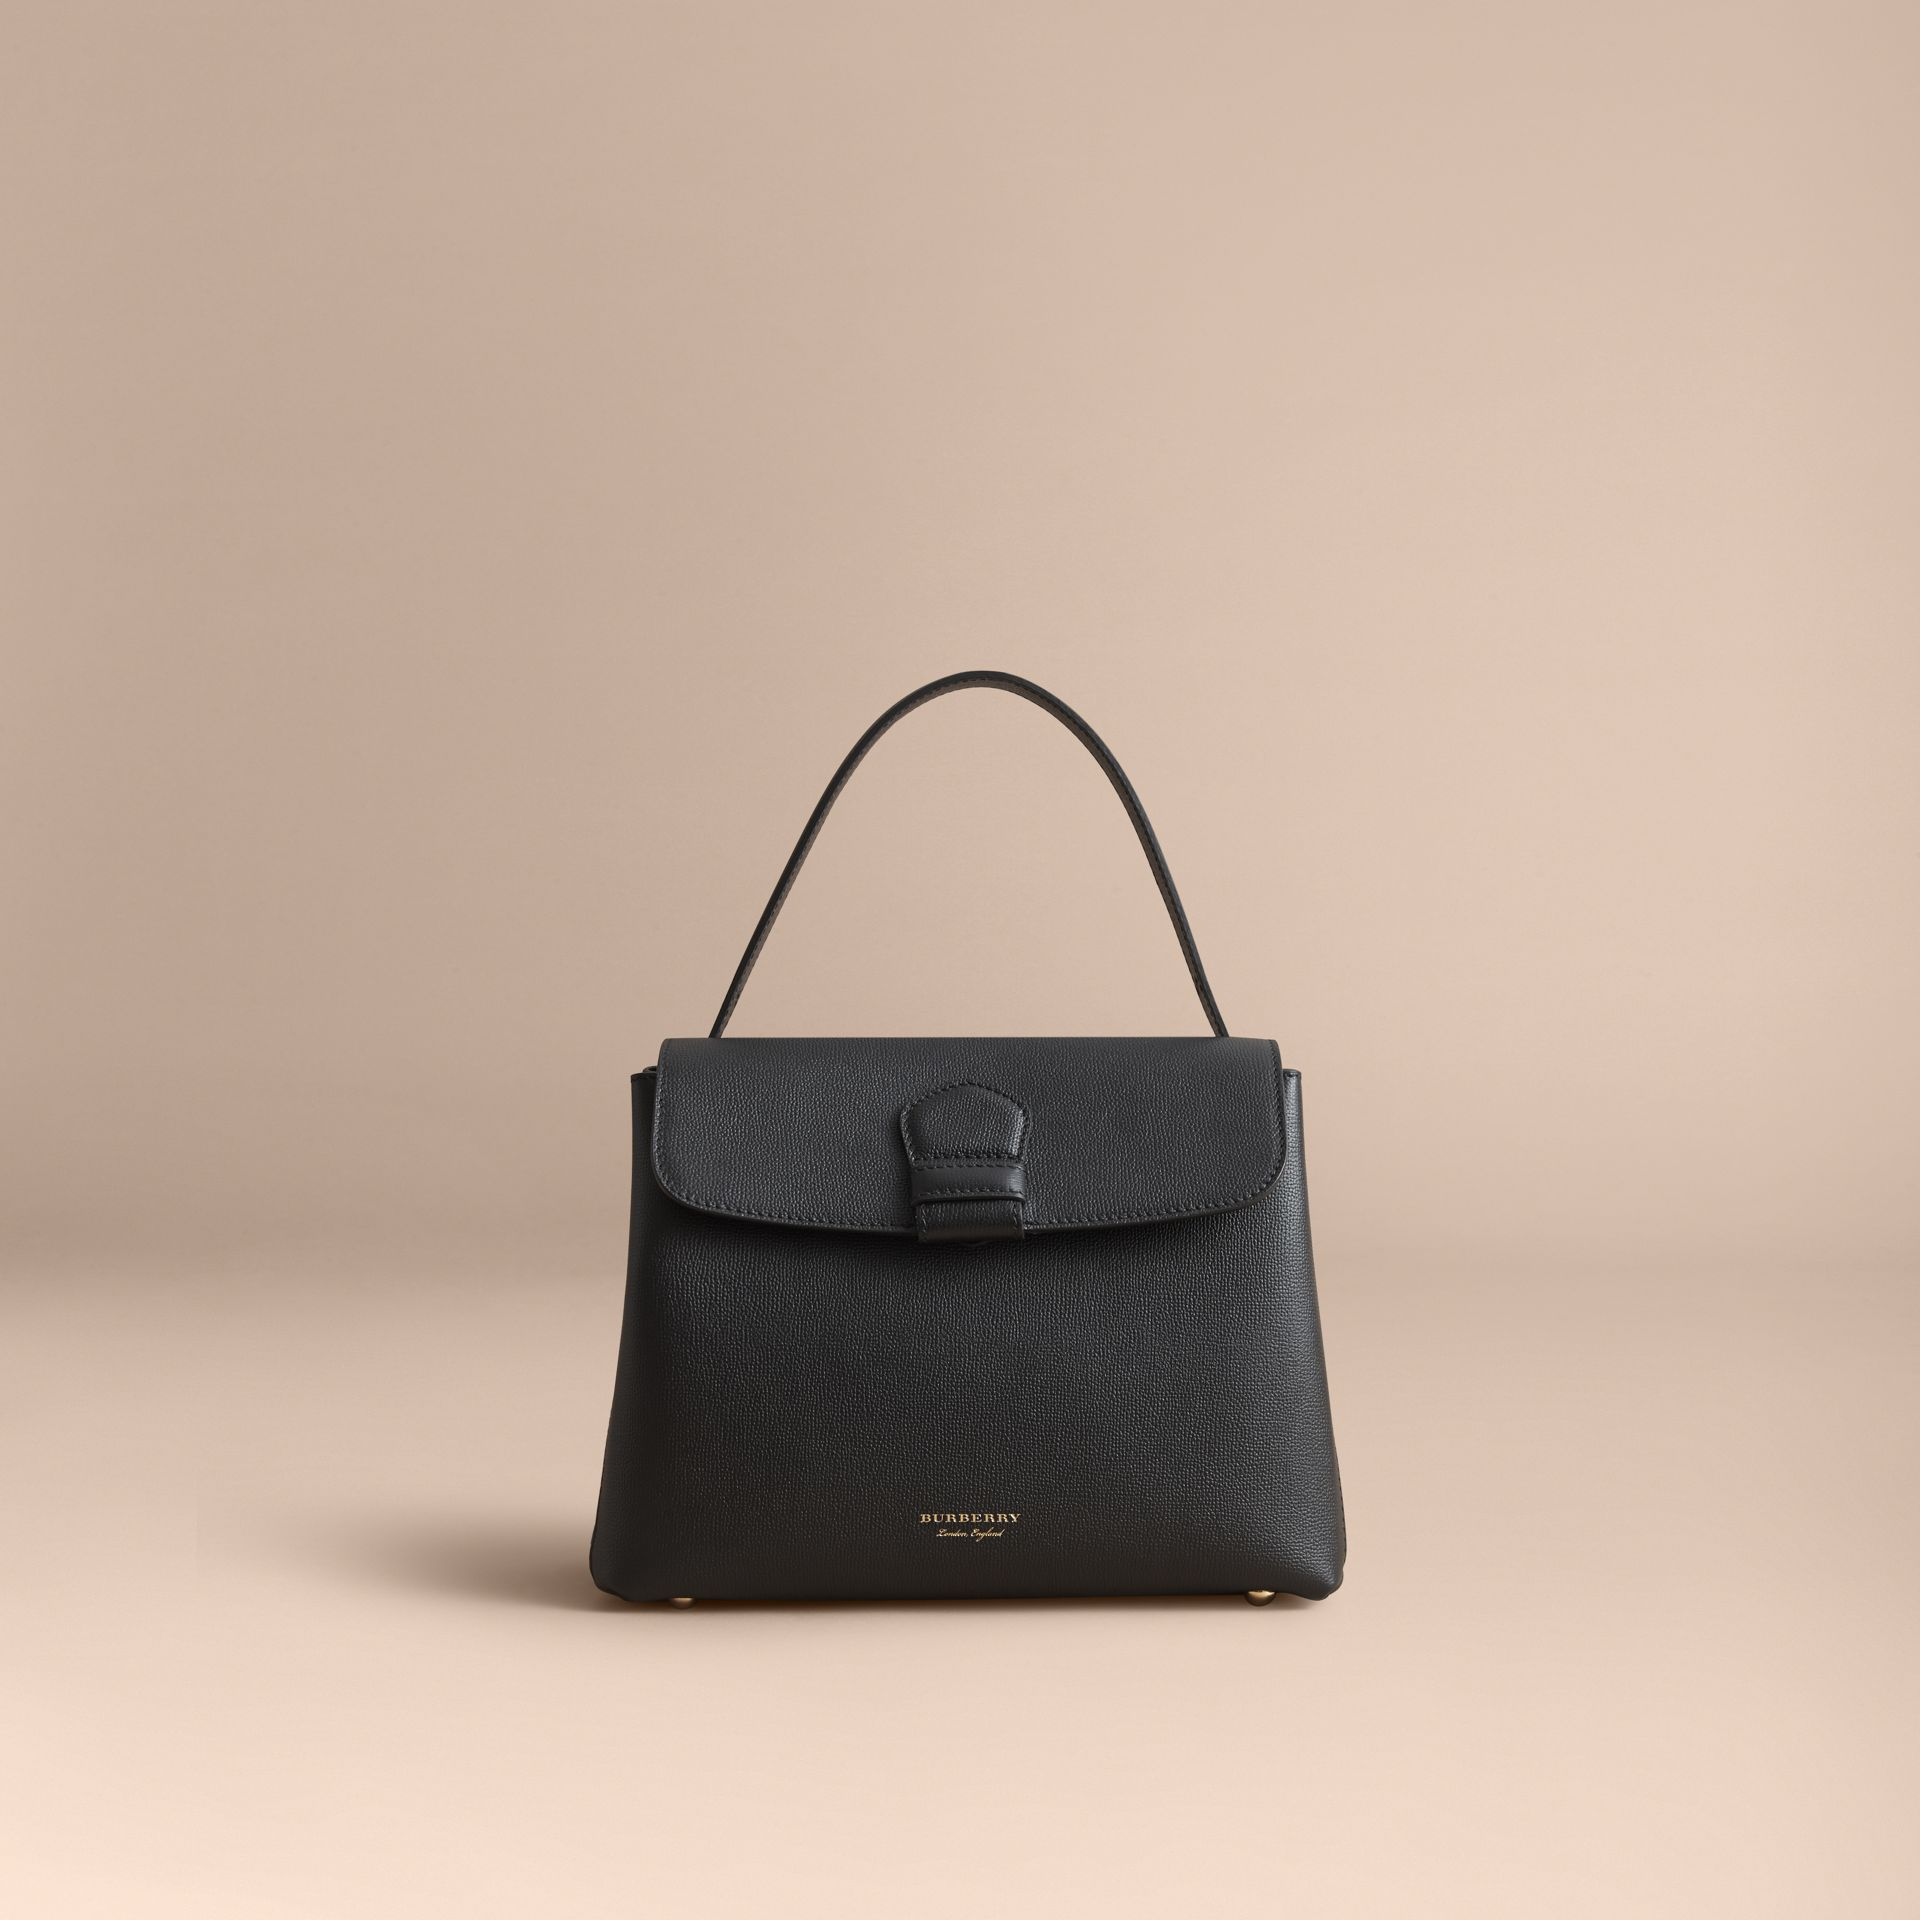 Medium Grainy Leather and House Check Tote Bag in Black - Women | Burberry United Kingdom - gallery image 8